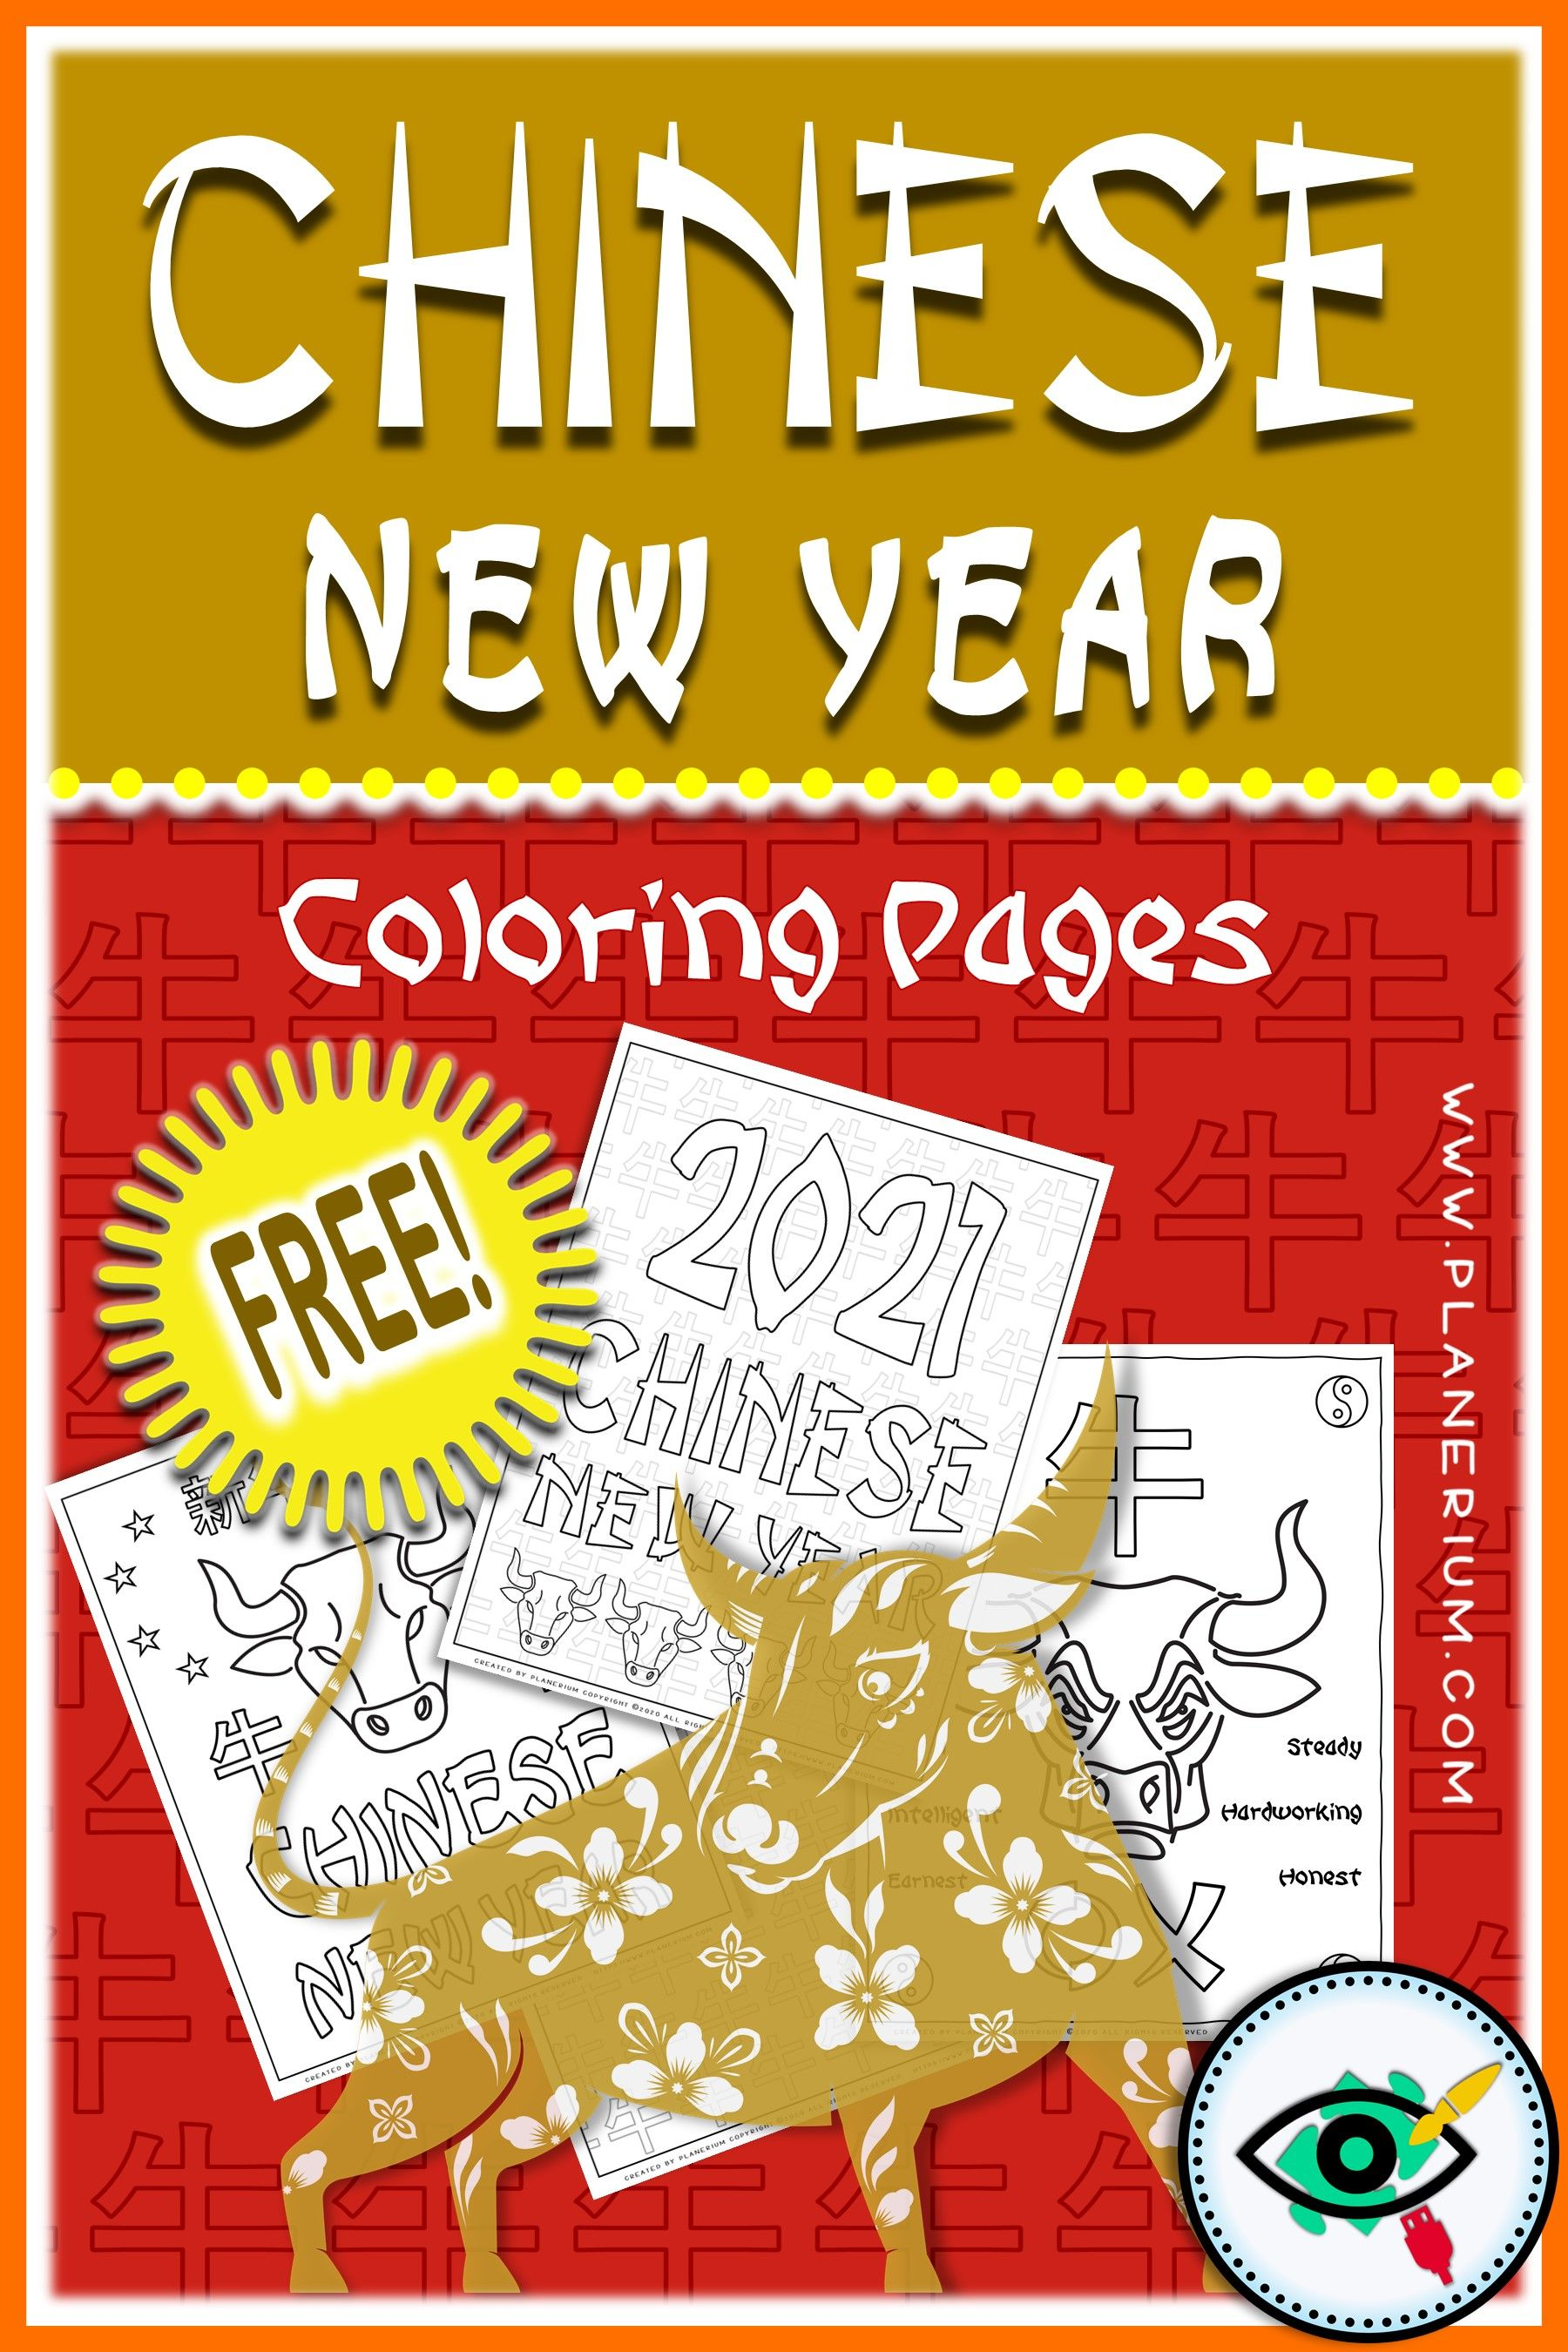 Happy Chinese New Year 2021 Of The Ox Lunar New Year Coloring Pages New Year Coloring Pages Chinese New Year Crafts Chinese New Year Activities